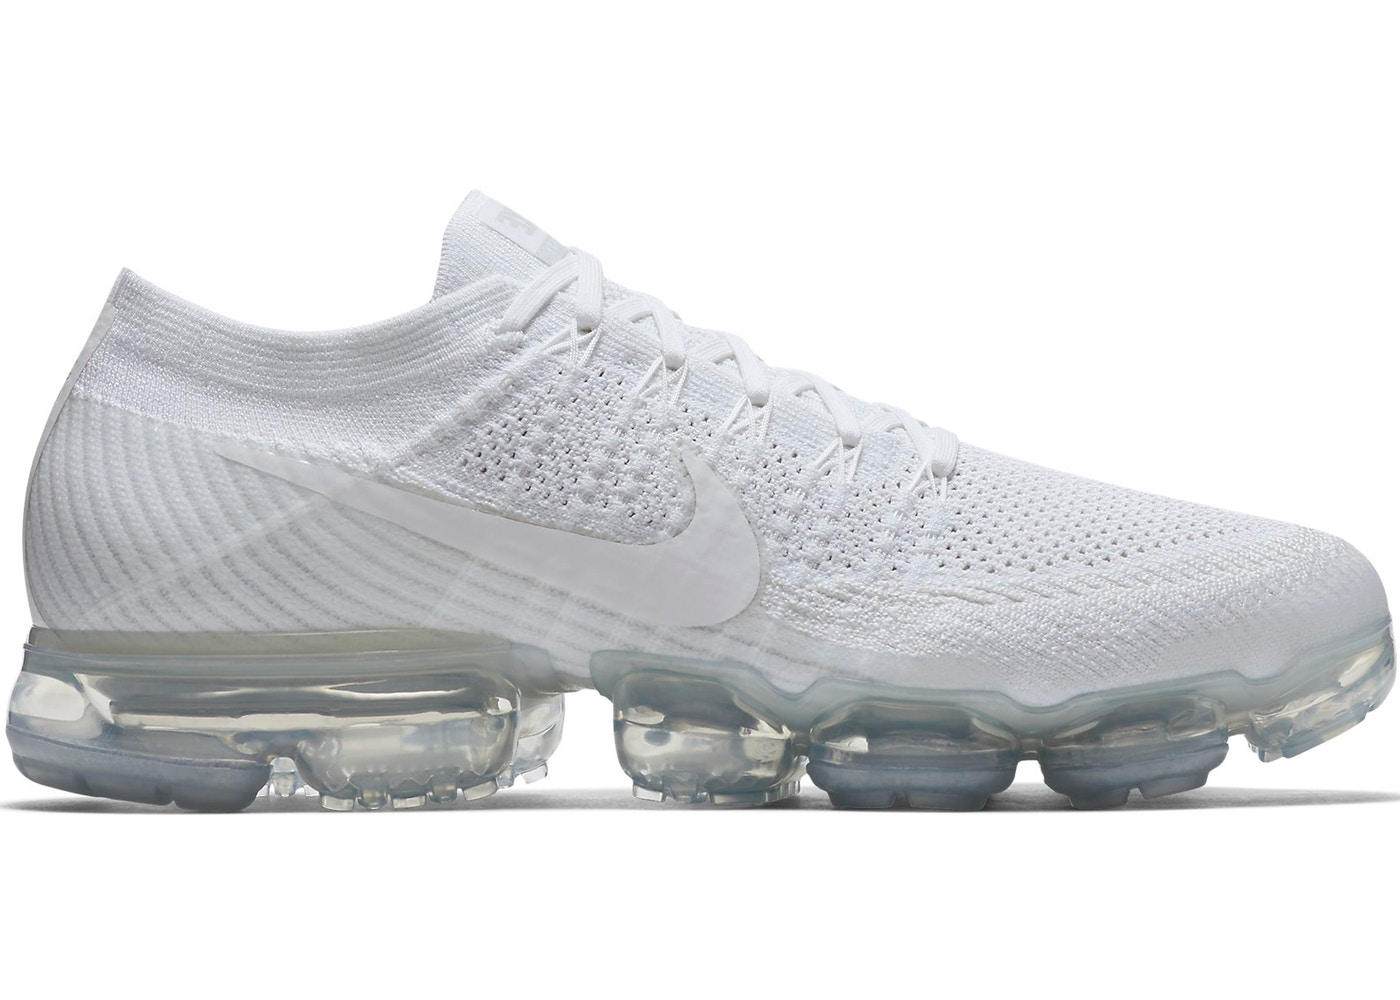 2b1f4ba5b4c34 Air VaporMax Triple White - 849558-100